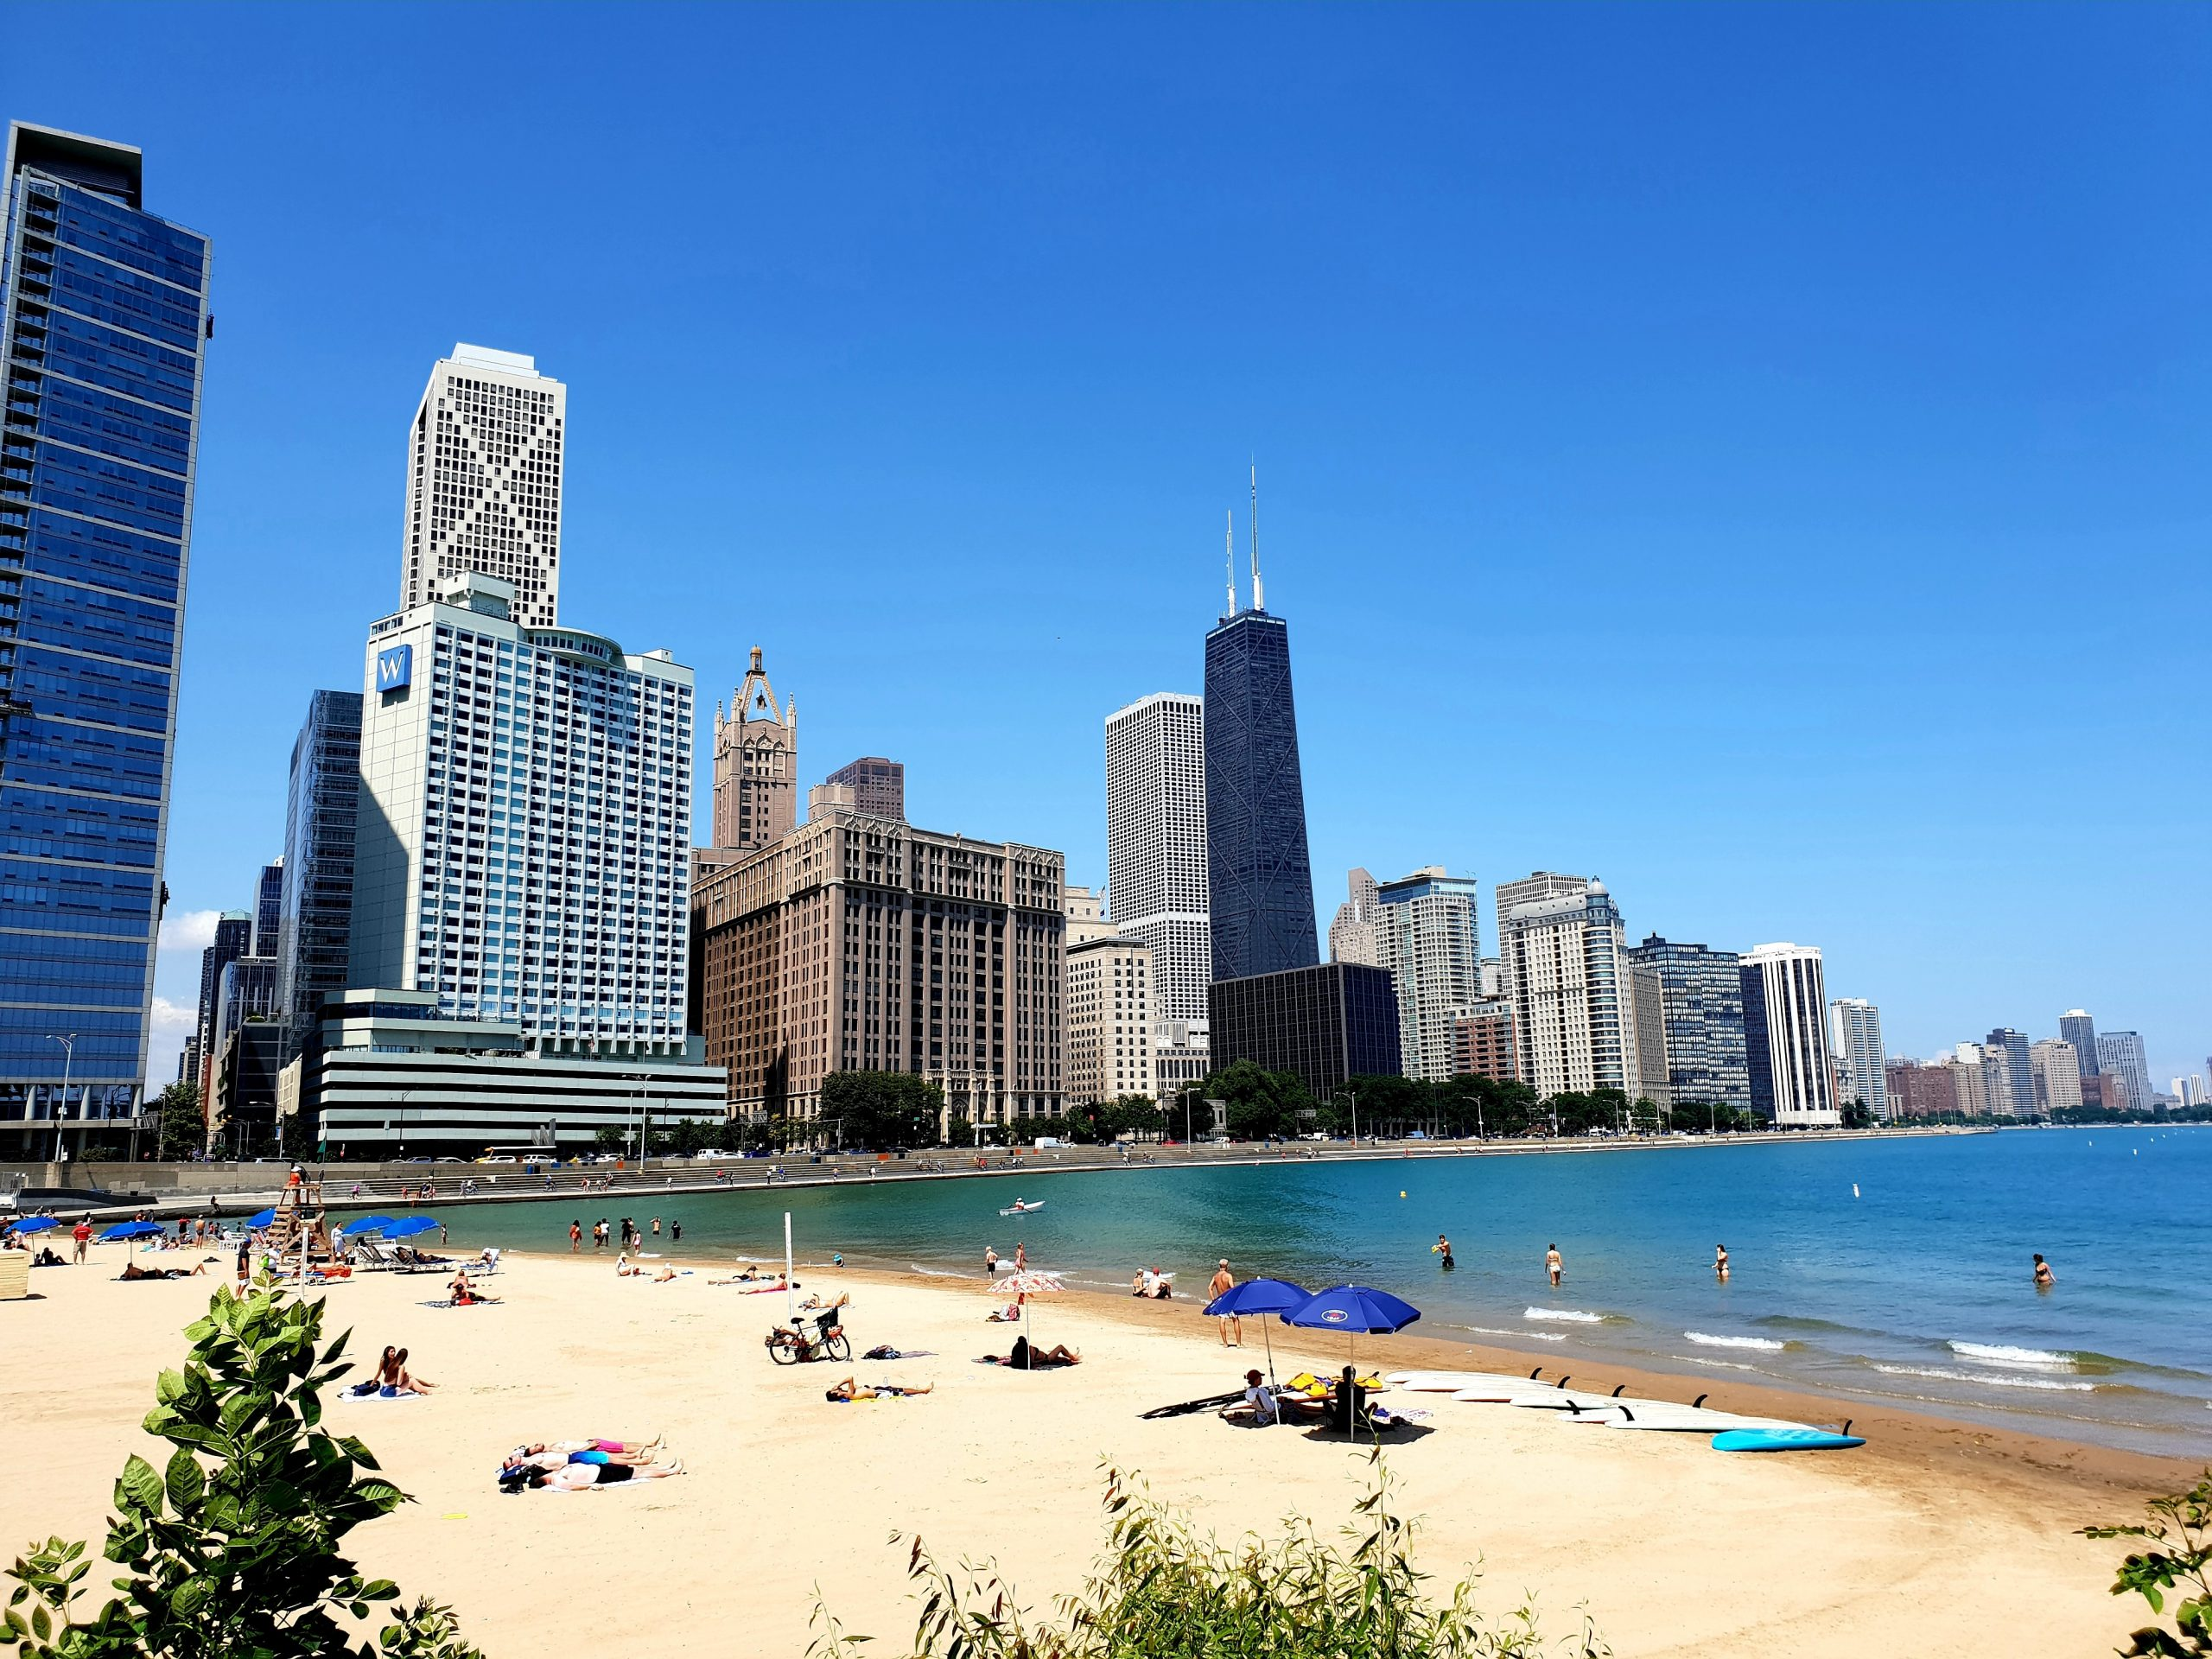 Looking for things to do for memorial day weekend near downtown Chicago in Streeterville?